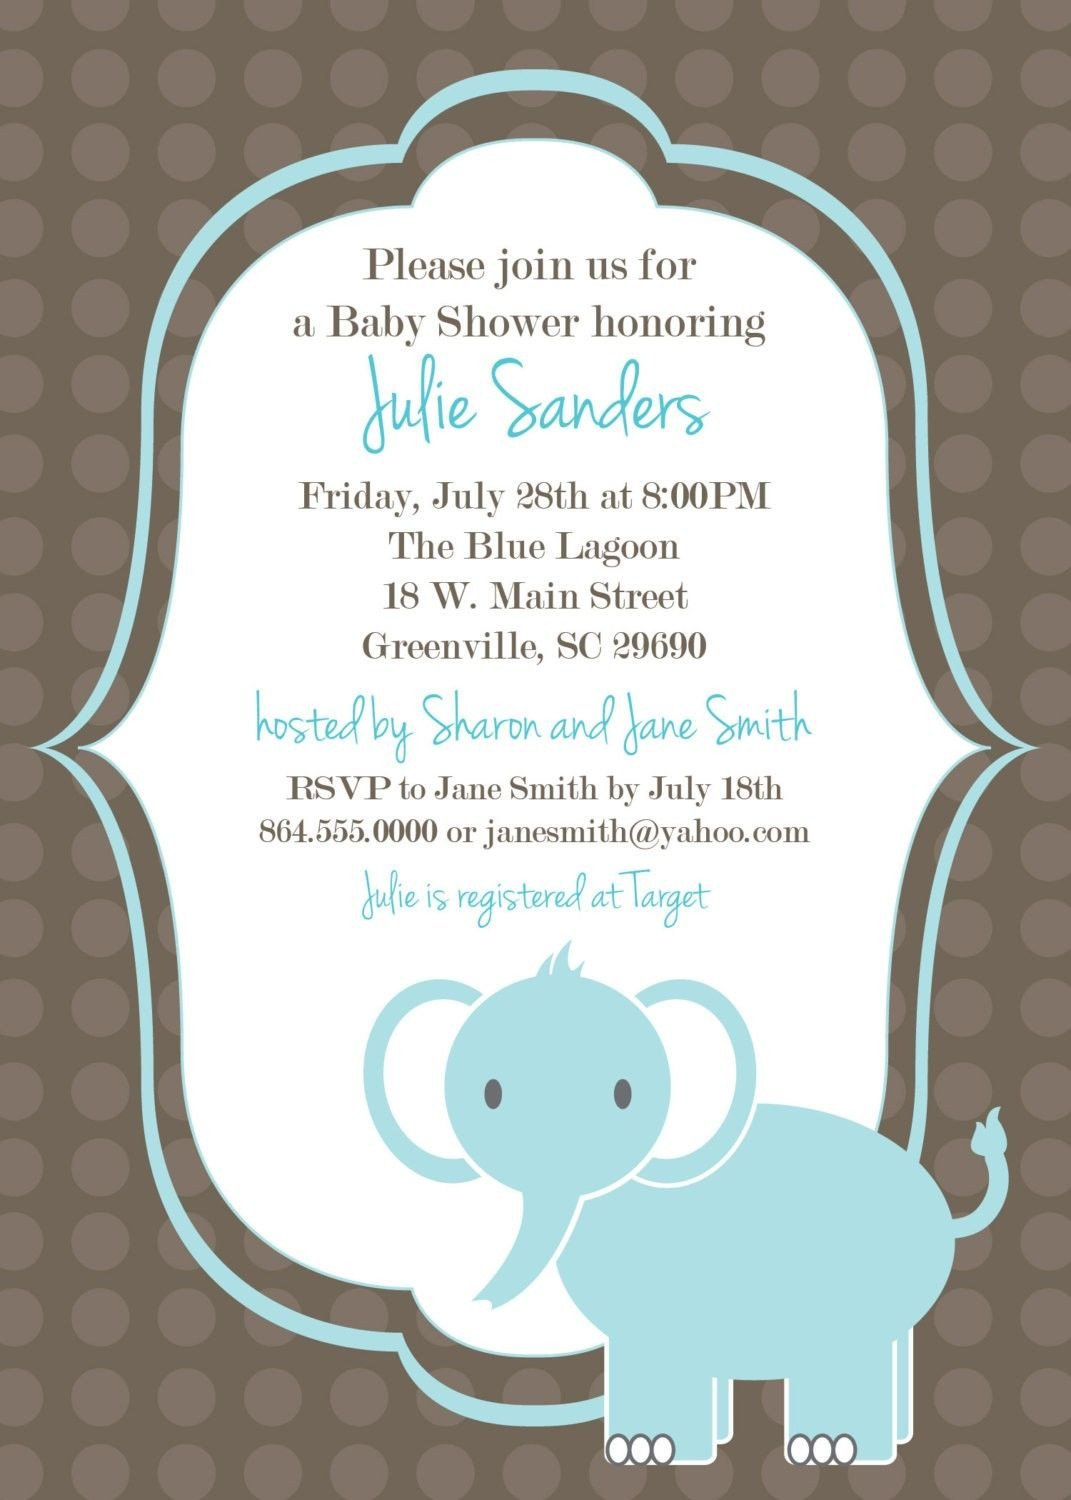 Baby Shower Template Word Download Free Template Got the Free Baby Shower